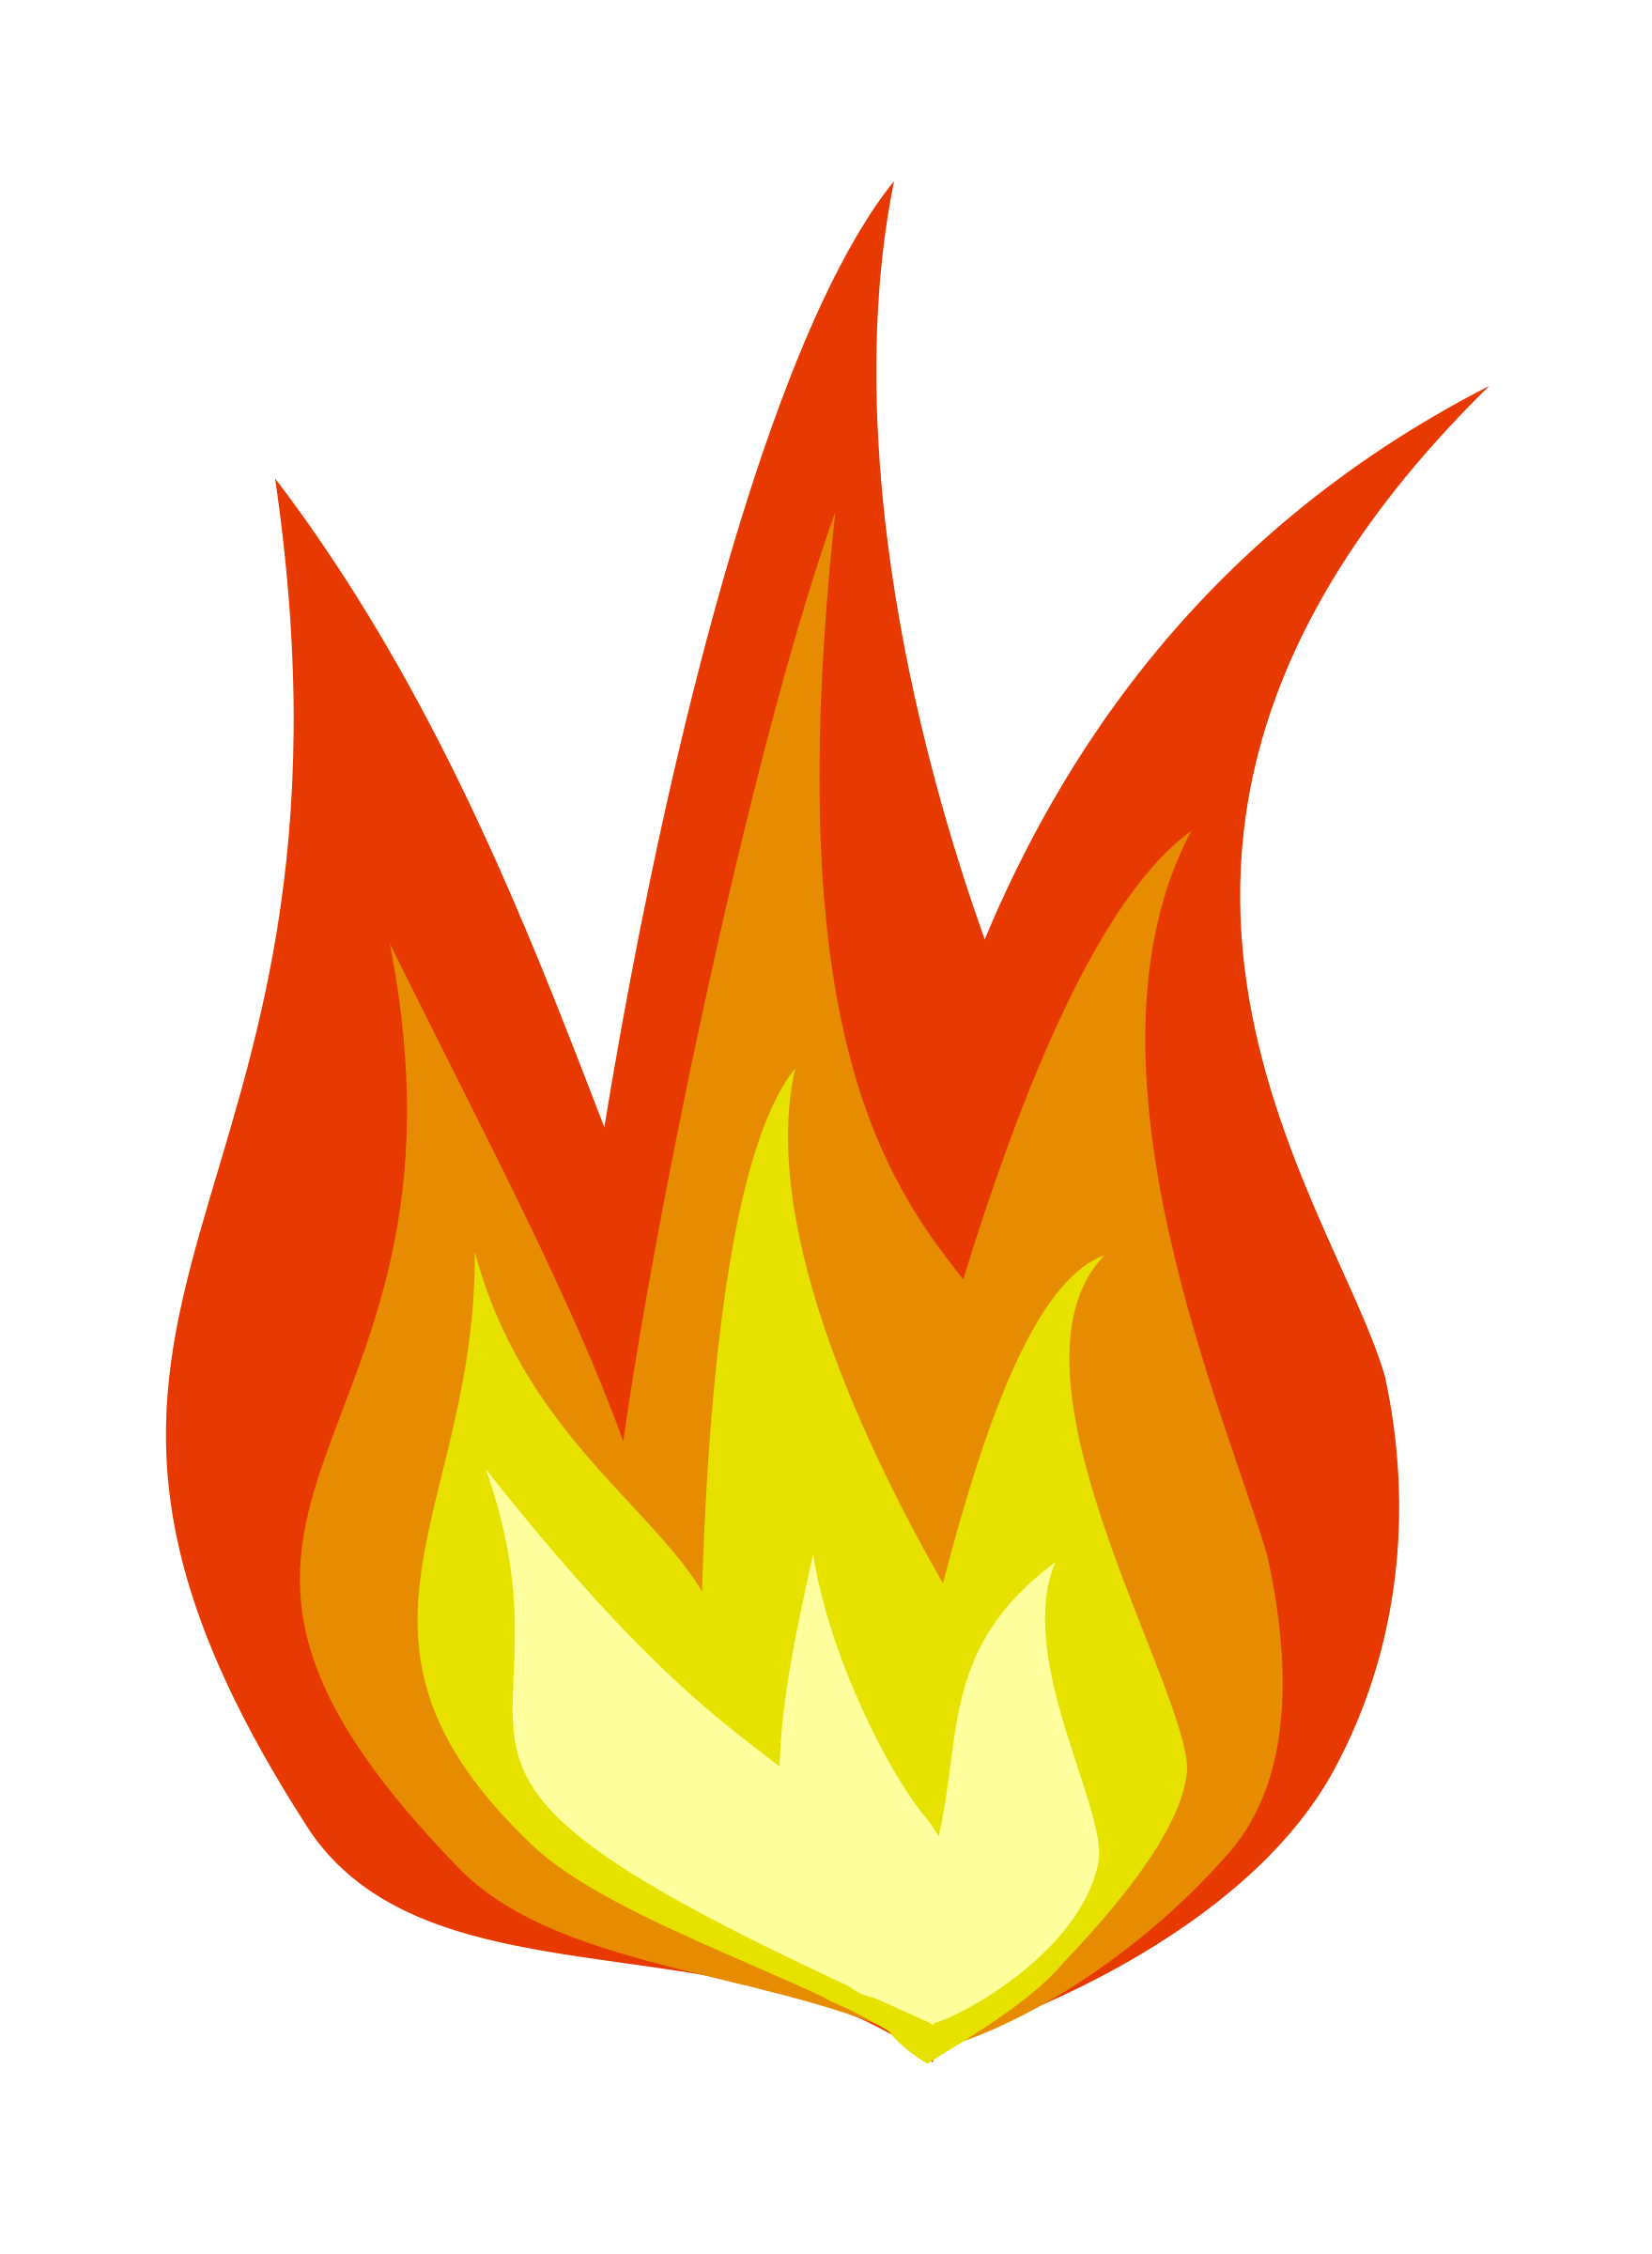 Fireball clipart fire circle. Clip art free download